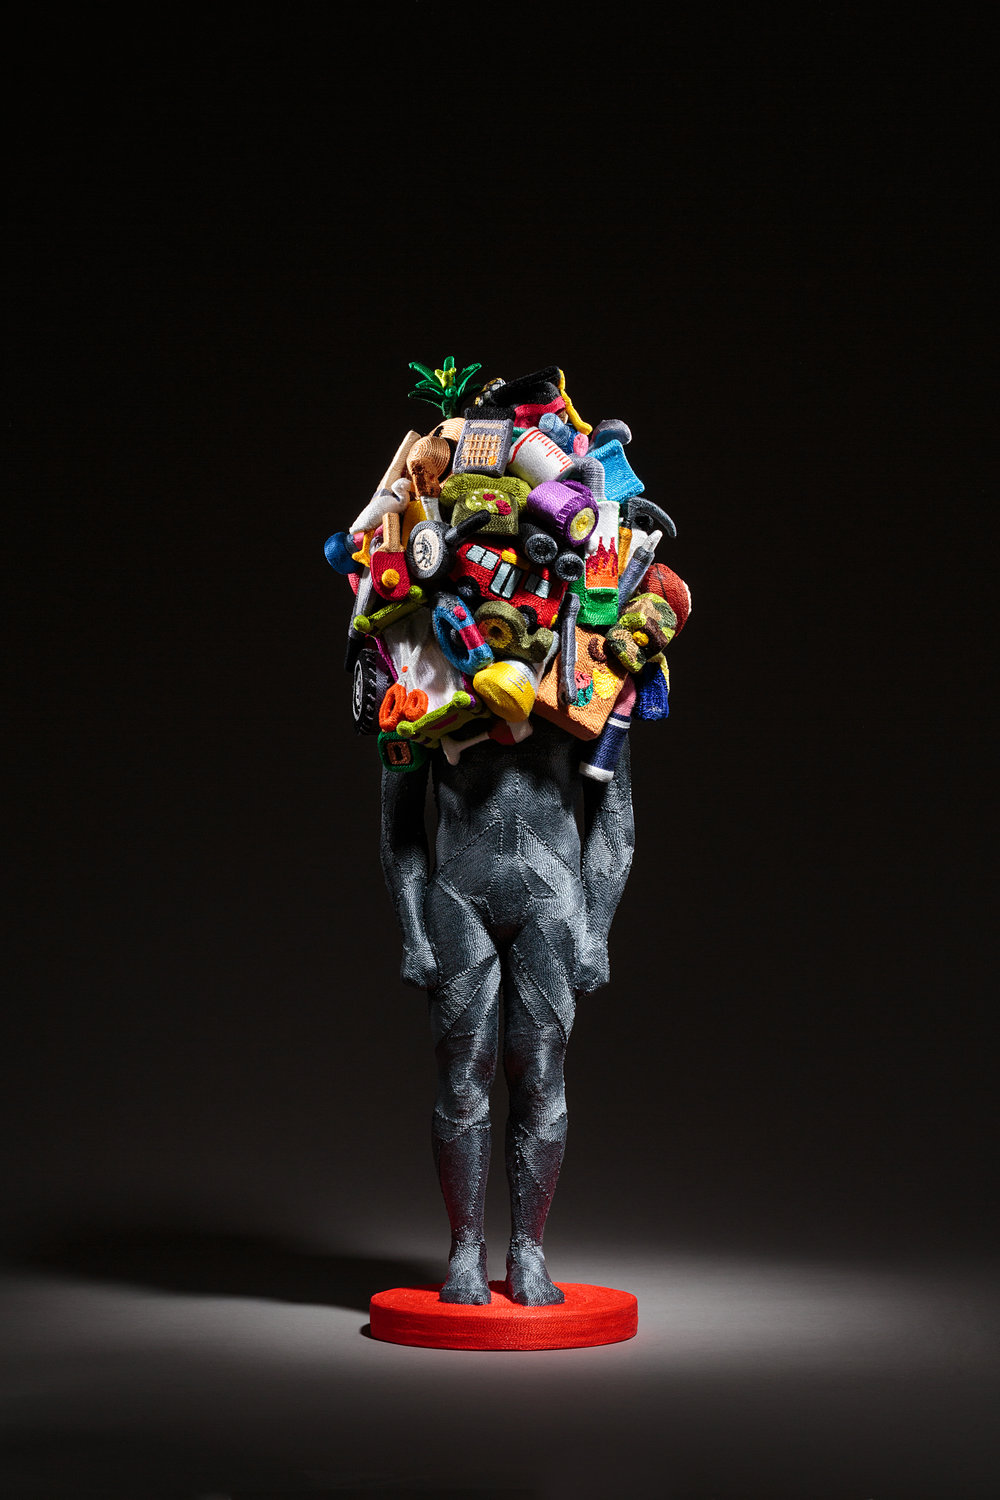 June Lee,  Weight of Human (No. 4) , 2017, Thread on resin cast and clay, 60 x 23 x 20 cm. Courtesy of the artist and Artvera's Gallery.